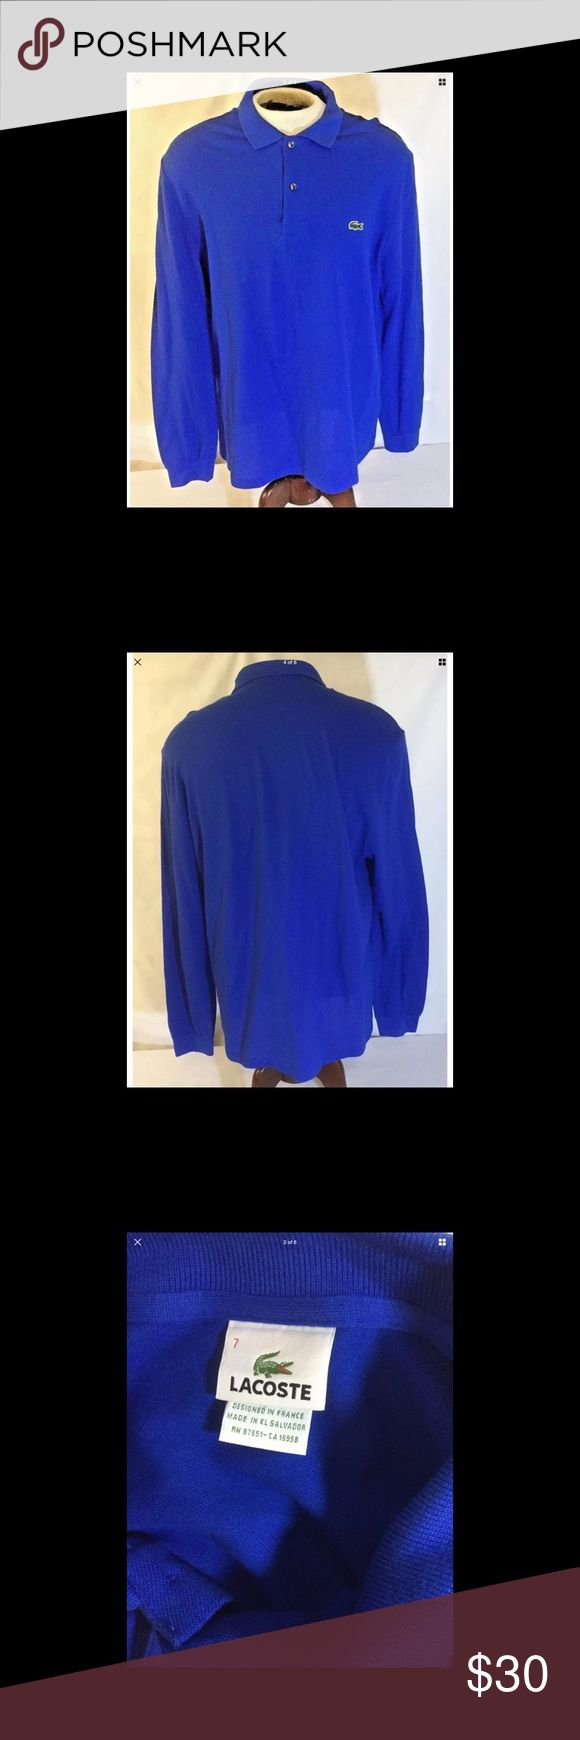 "LACOSTE MENS LONG SLEEVE POLO SHIRT XXL BLUE pit to pit: 23"" (46 chest) length: 30"" sleeves: 28"" condition: very good tag size: 7 Designed in France  Freshly laundered Fast shipping Non smoking environment Lacoste Shirts Polos"